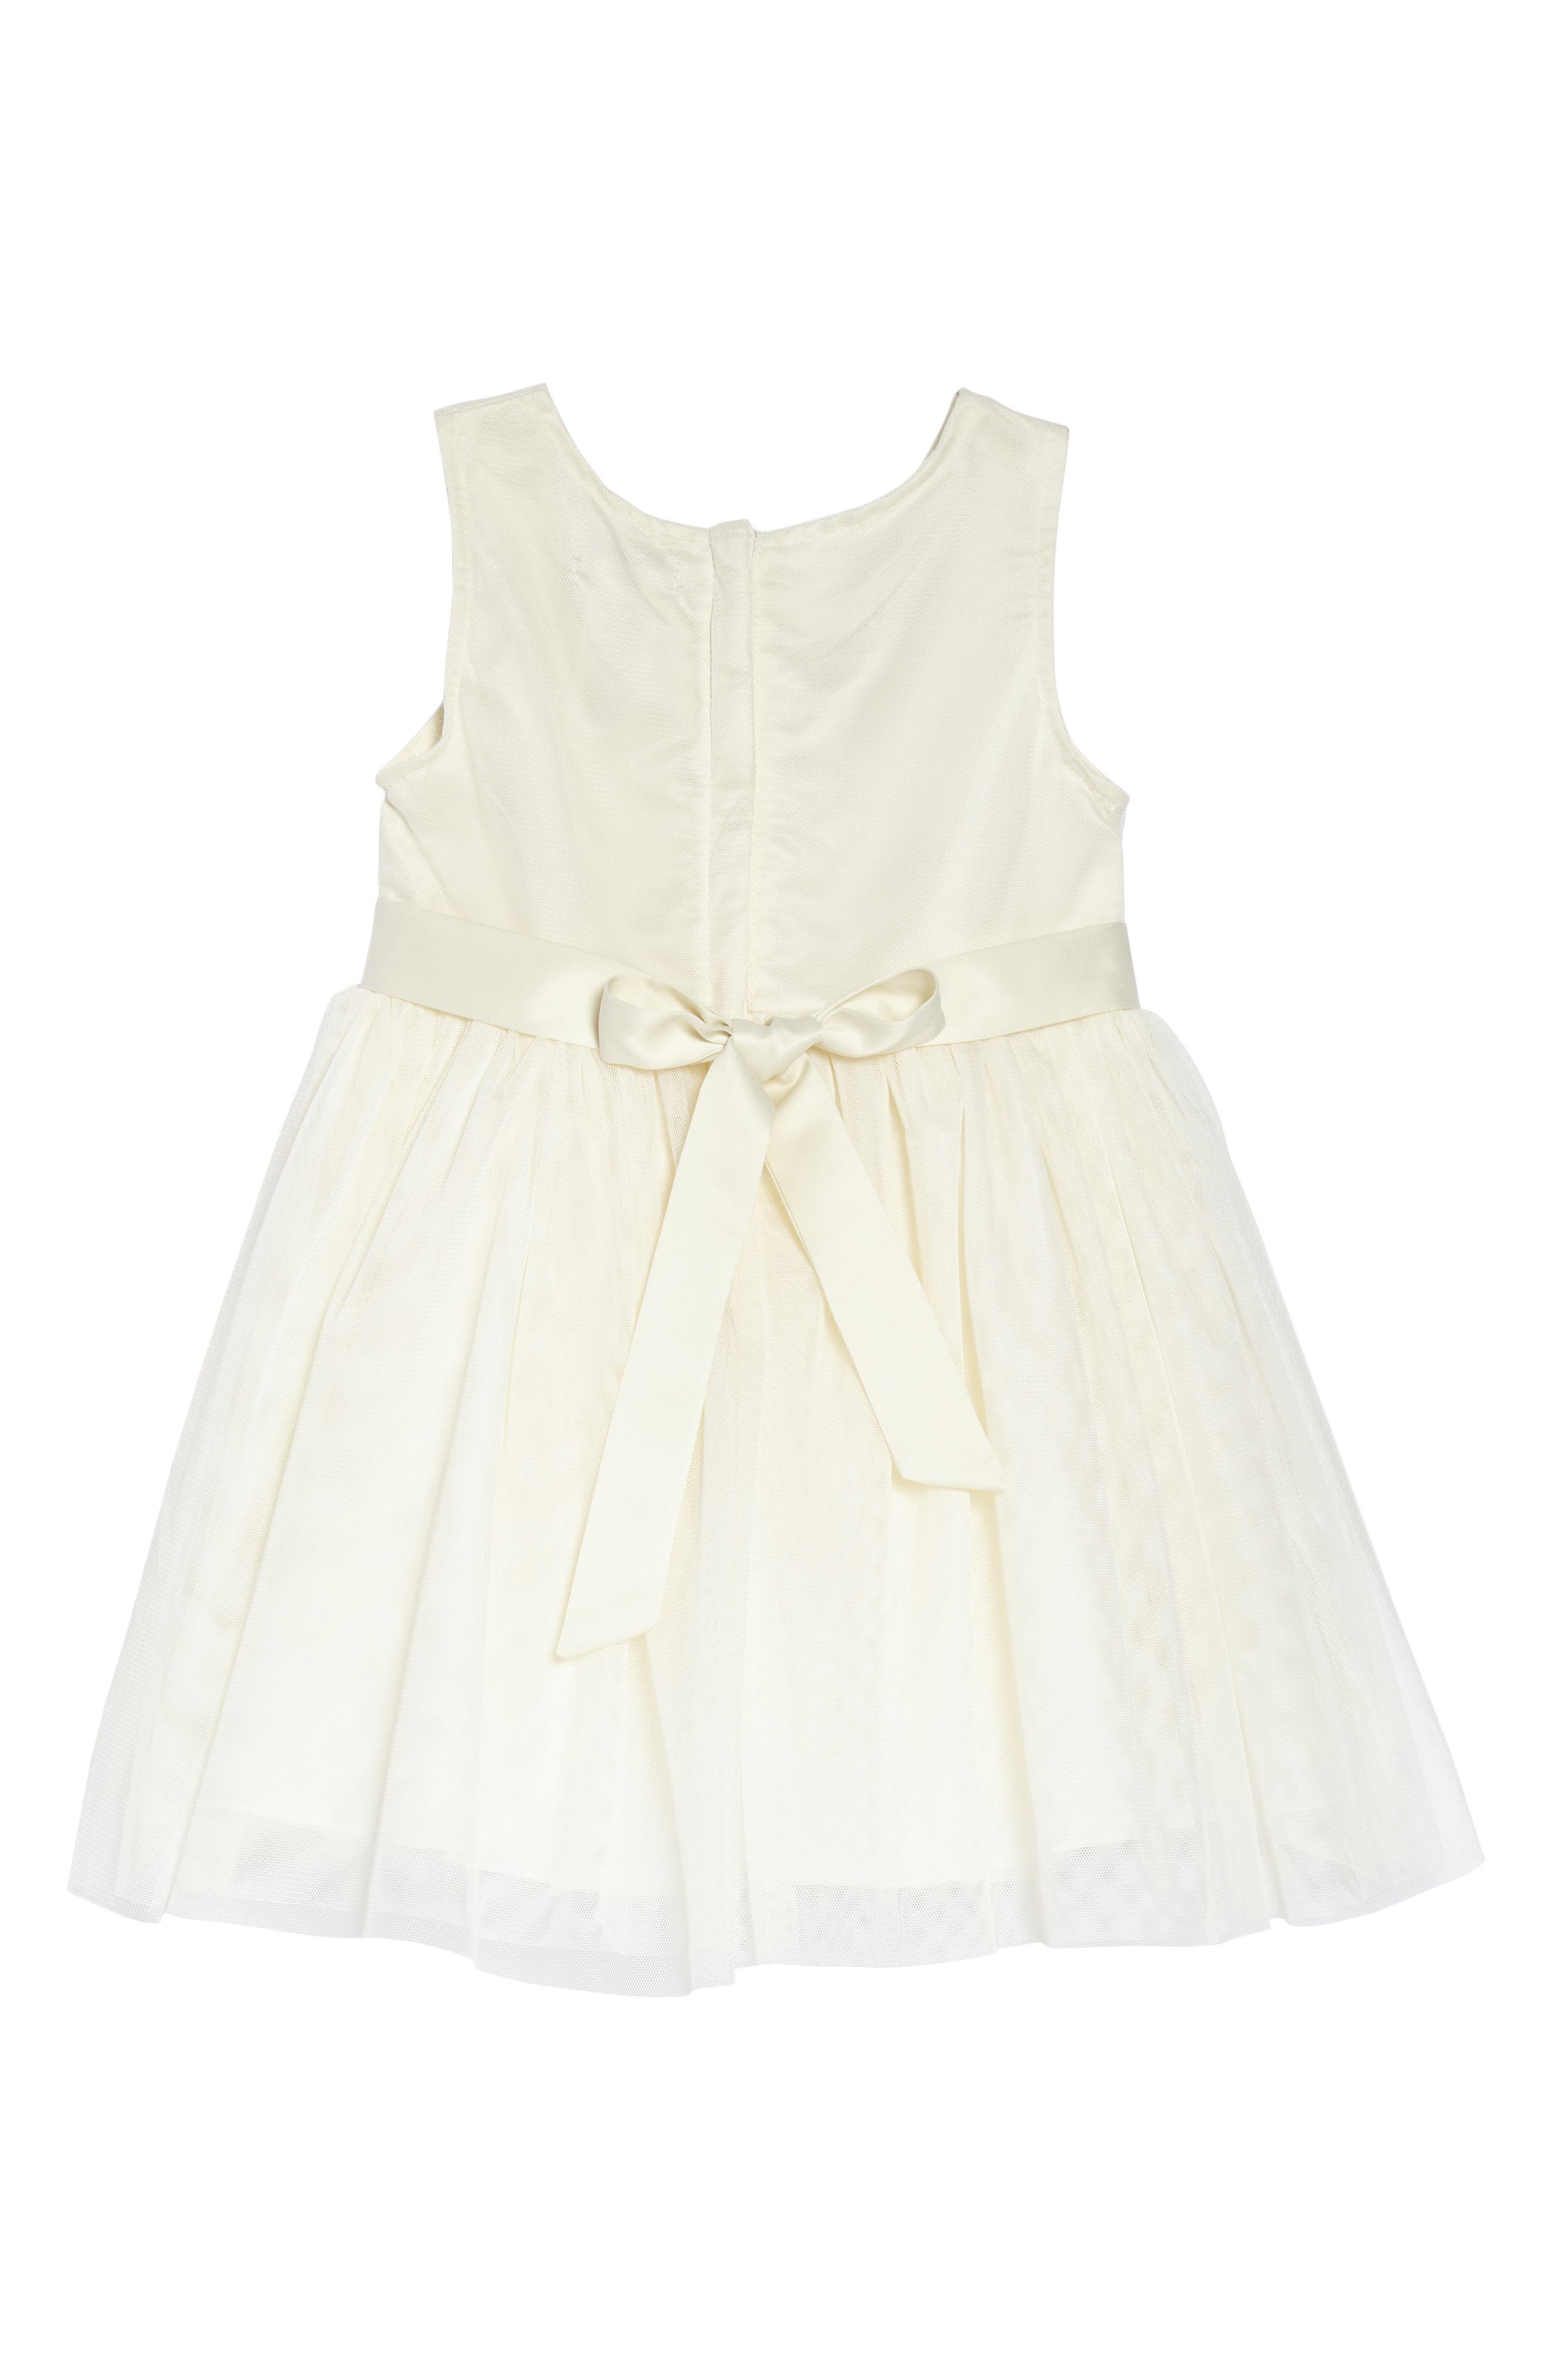 Flower Embroidered Party Dress,                             Alternate thumbnail 2, color,                             900